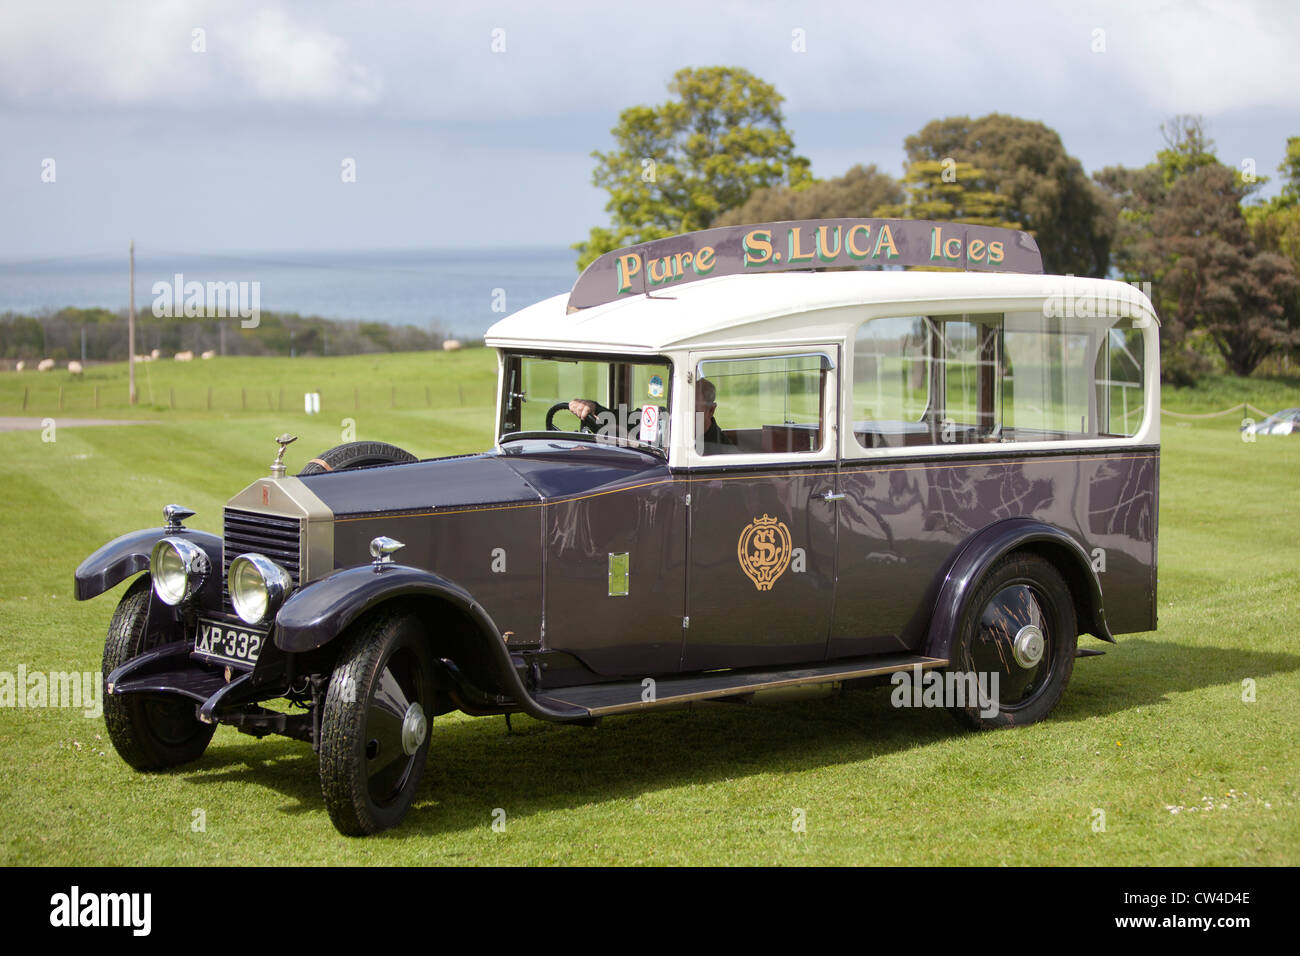 Rolls Royce For Hire >> S. Luca vintage ice cream van Roll's Royce at Dunglass Estate in East Stock Photo: 49885262 - Alamy